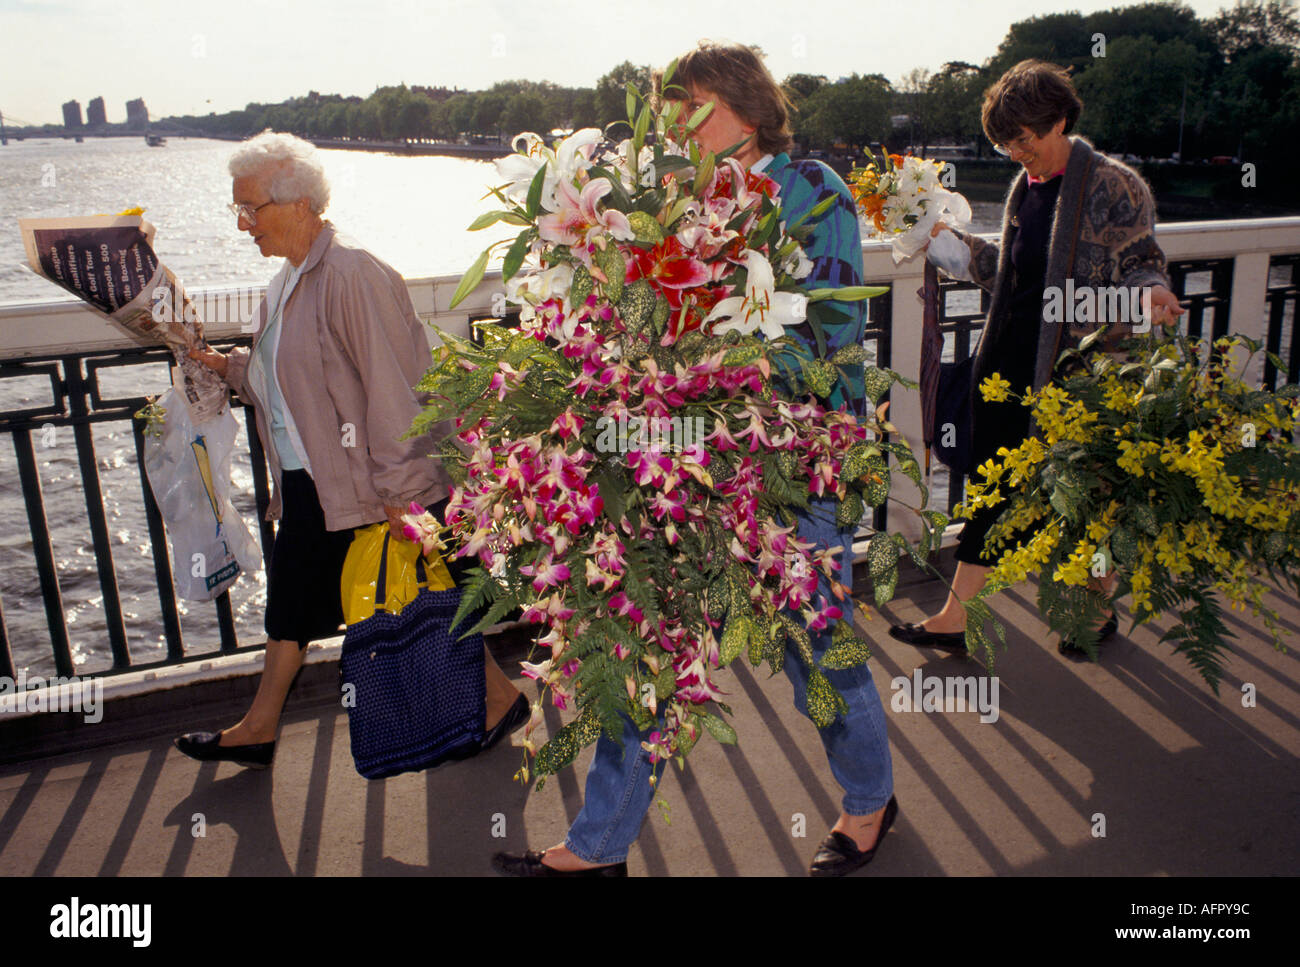 Chelsea Flower show London Annually May Britain PHOTO HOMER SYKES - Stock Image